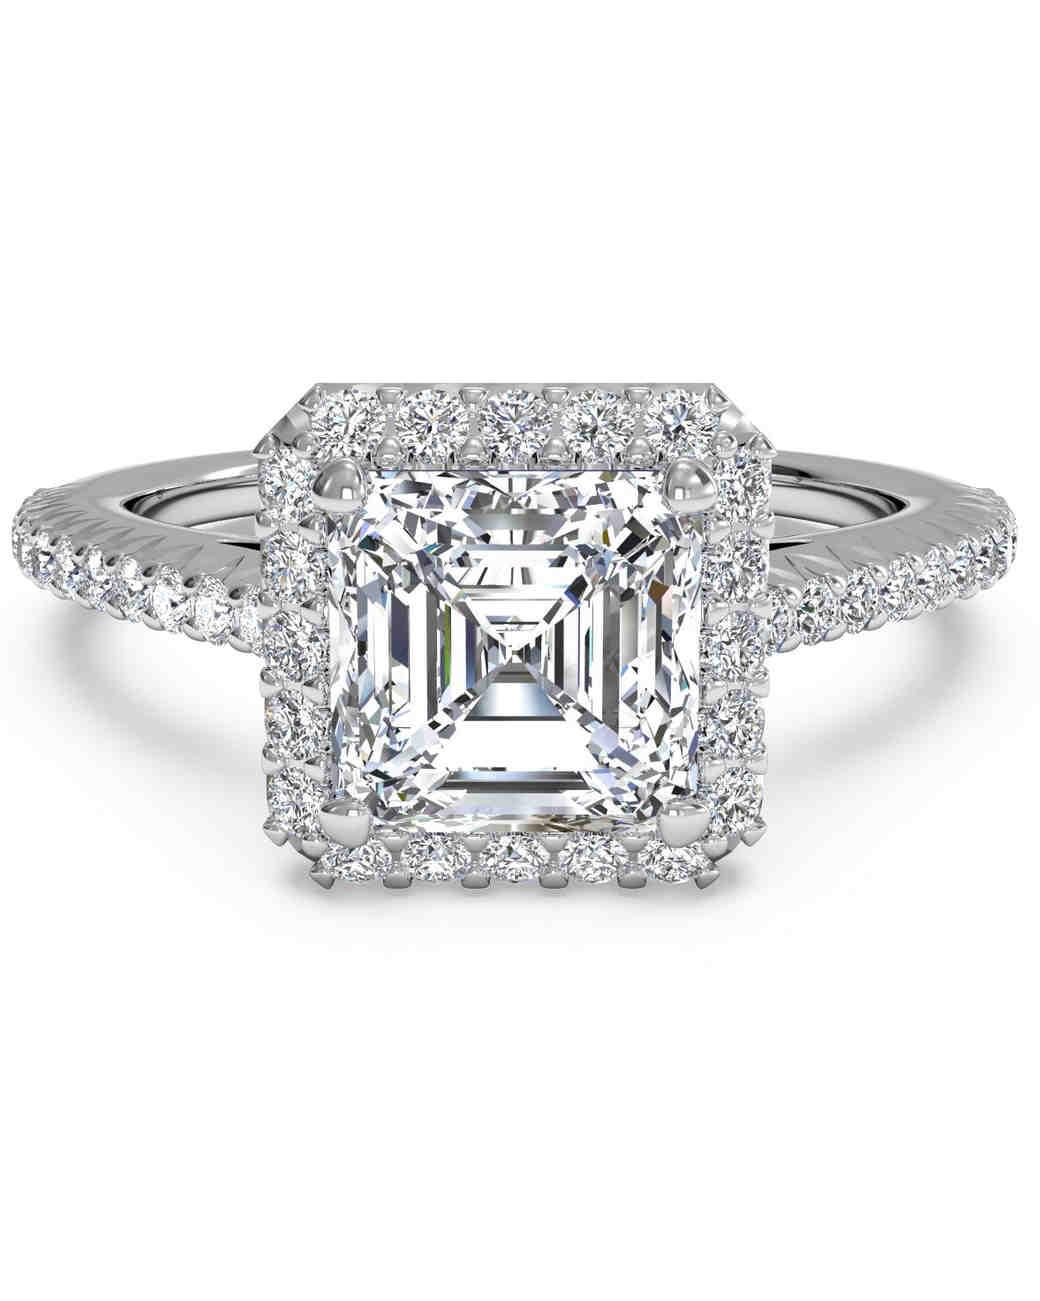 ritani-asscher-cut-halo-french-set-white-gold-engagement-ring-0816_vert.jpg